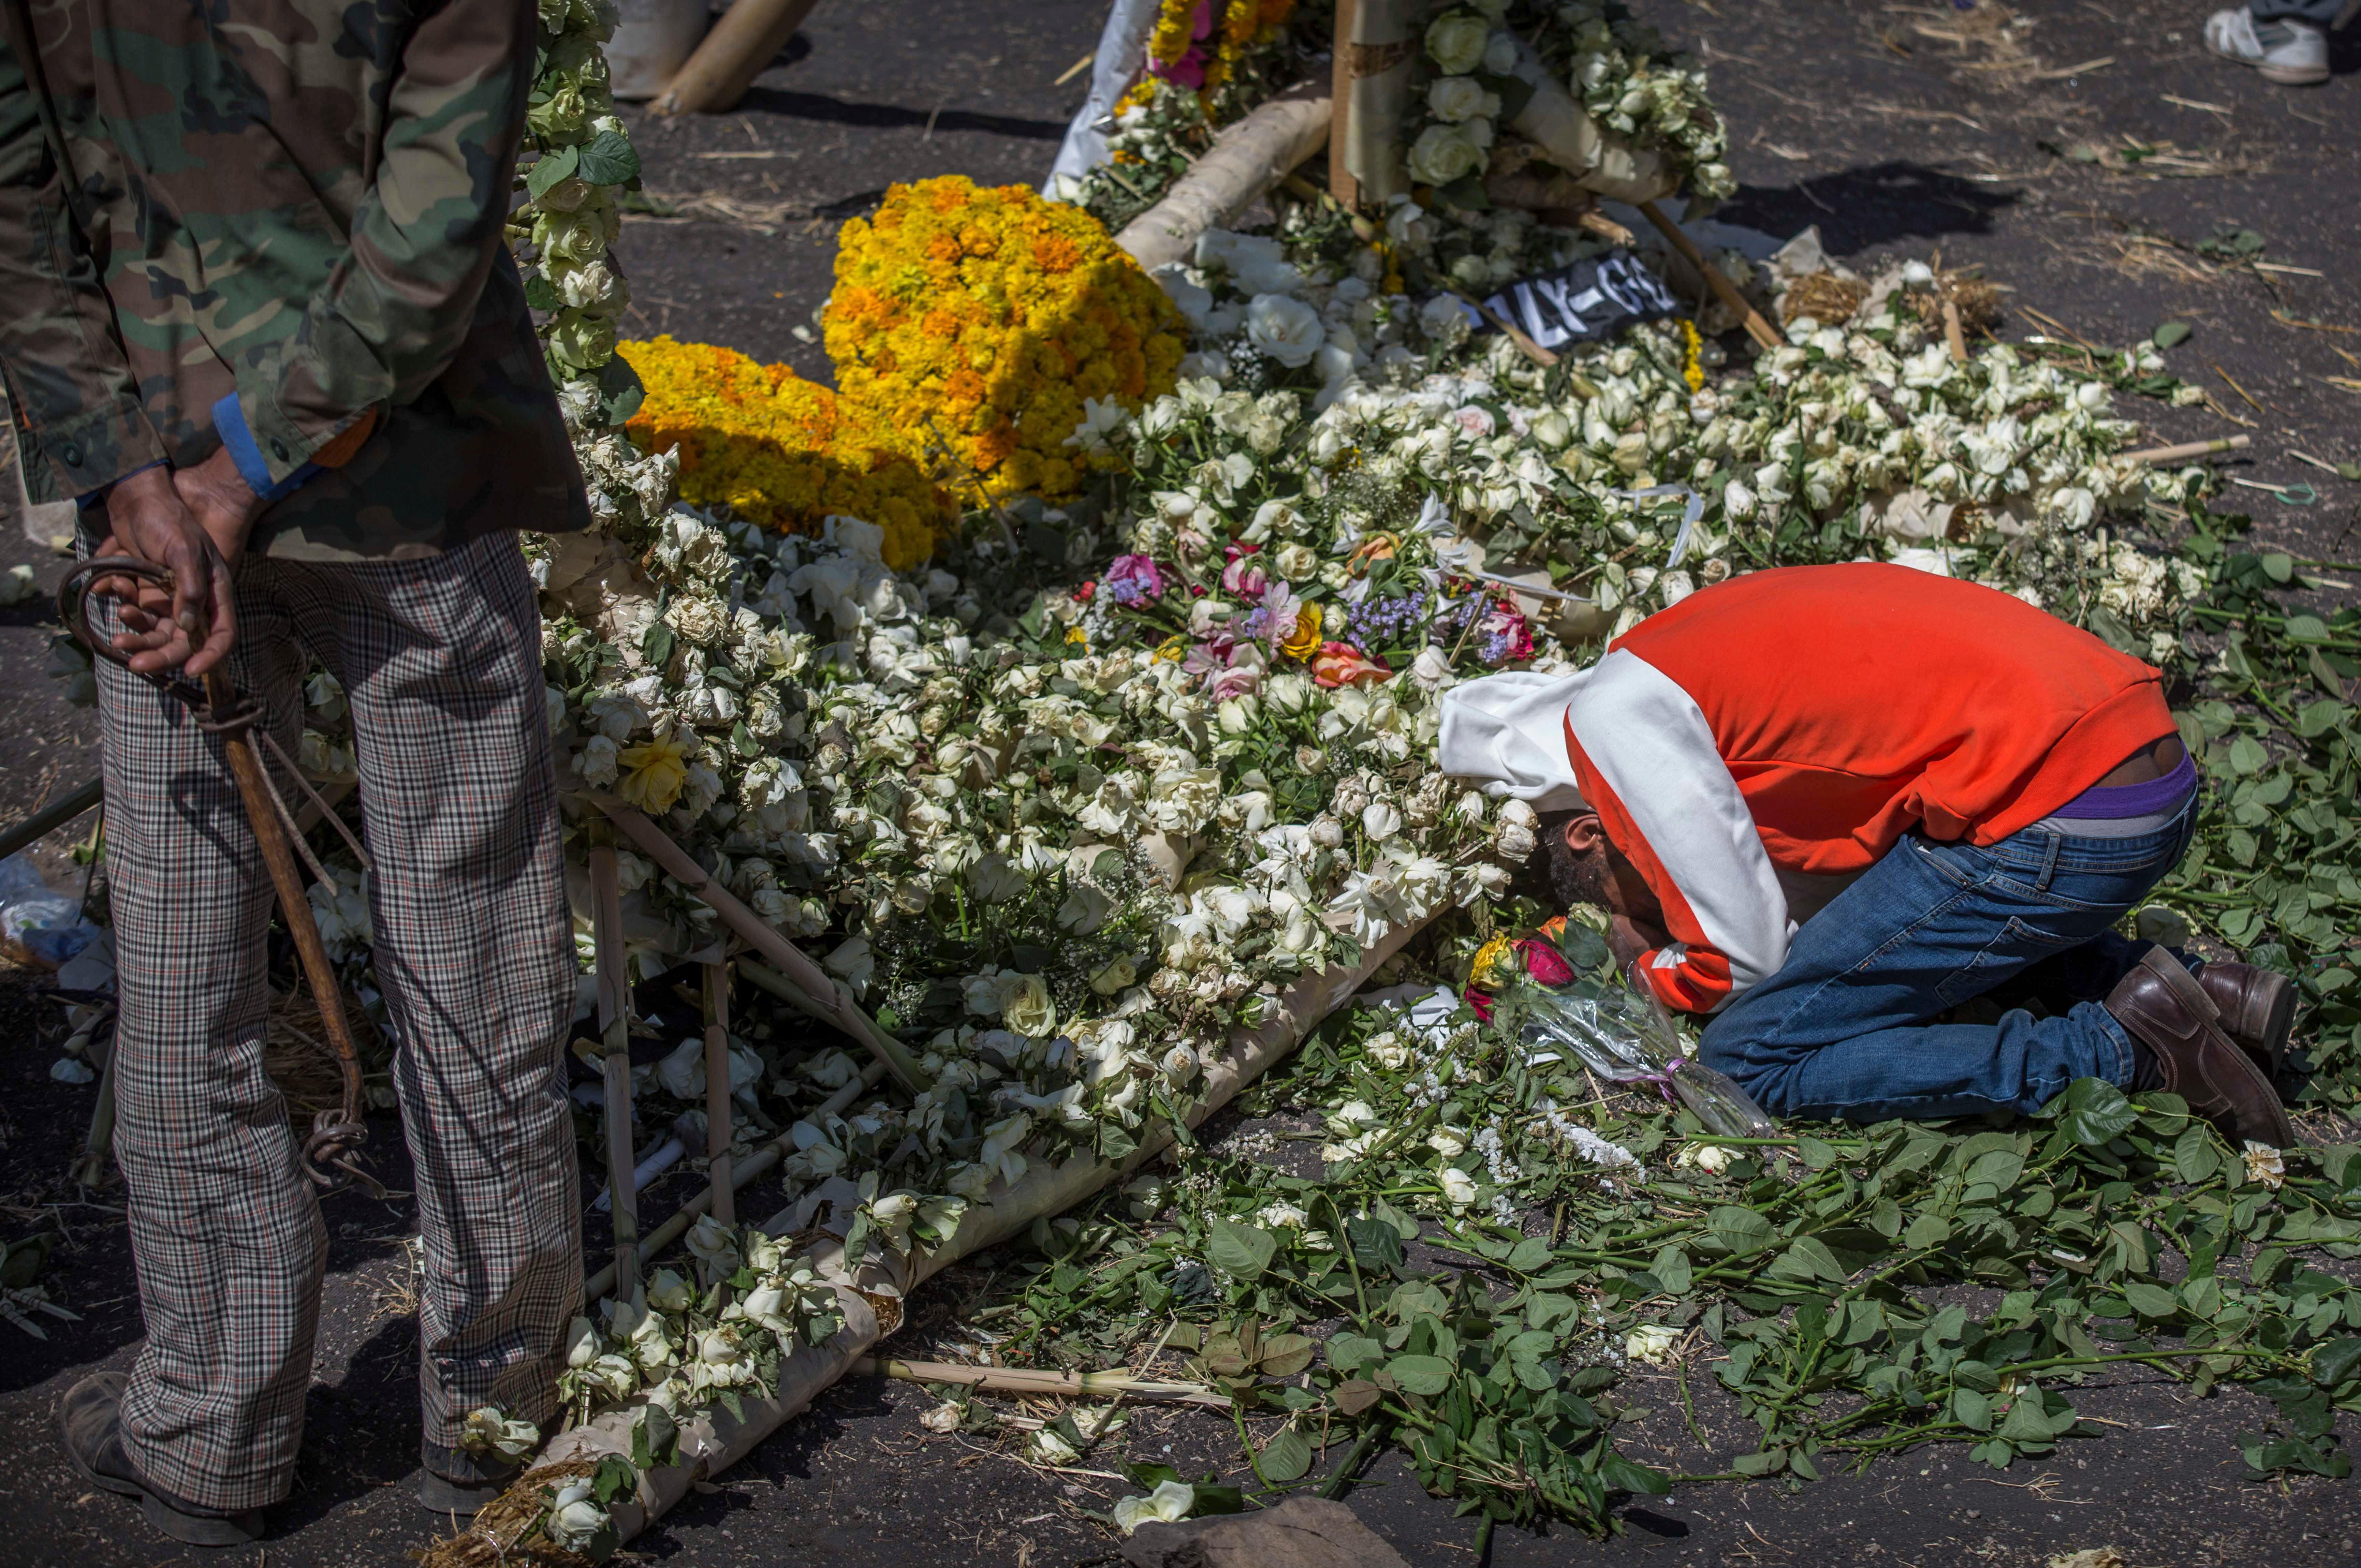 An Ethiopian relative of a crash victim mourns and grieves next to a floral tribute at the scene where the Ethiopian Airlines Boeing 737 Max 8 crashed shortly after takeoff on Sunday killing all 157 on board, near Bishoftu, south-east of Addis Ababa, in Ethiopia Friday, March 15.. (AP Photo/Mulugeta Ayene)